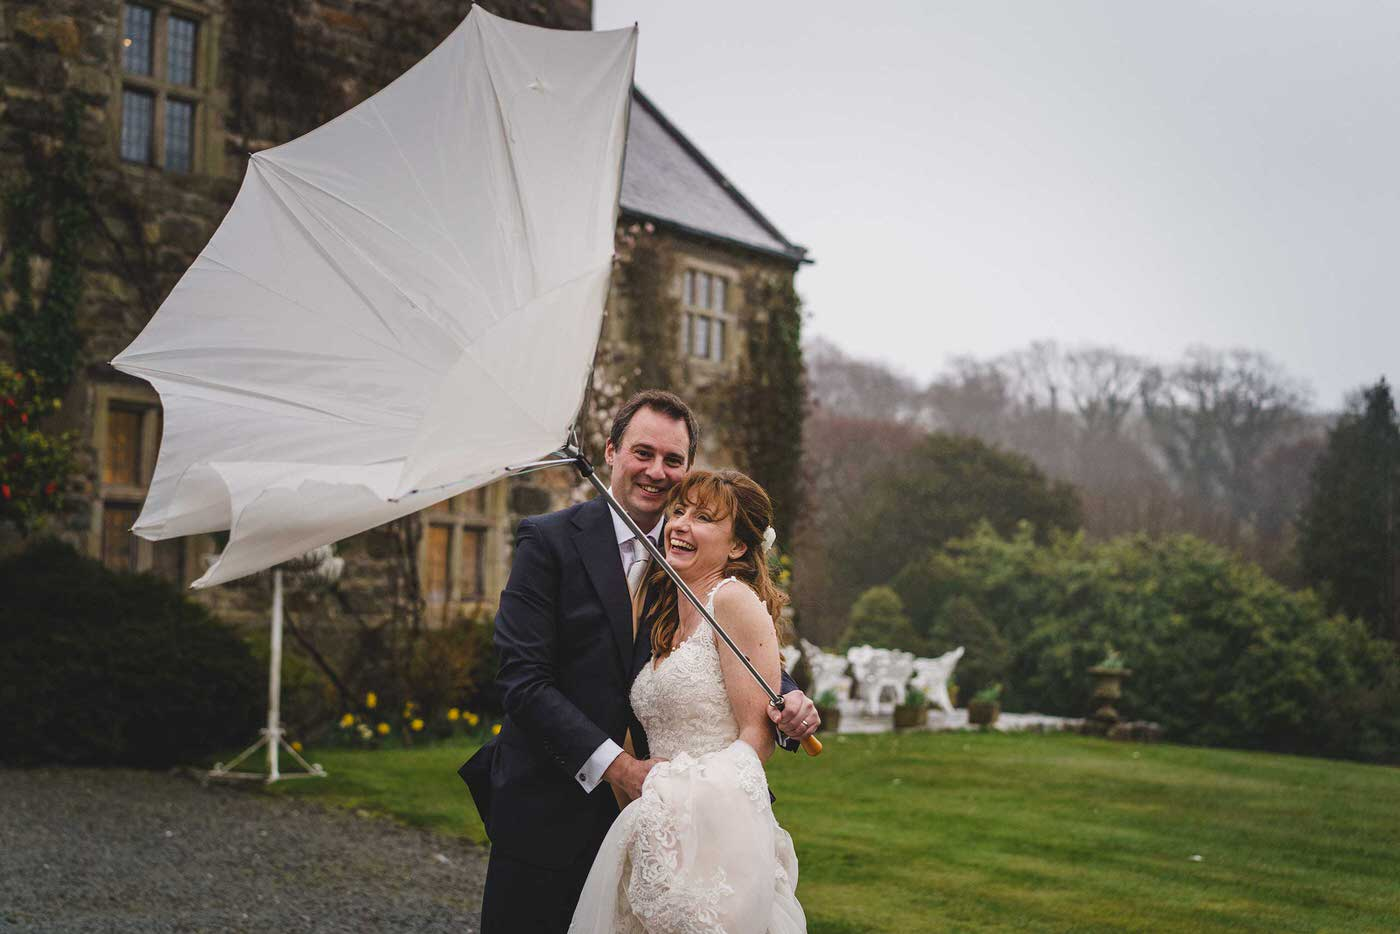 North Wales wedding photographer 01a